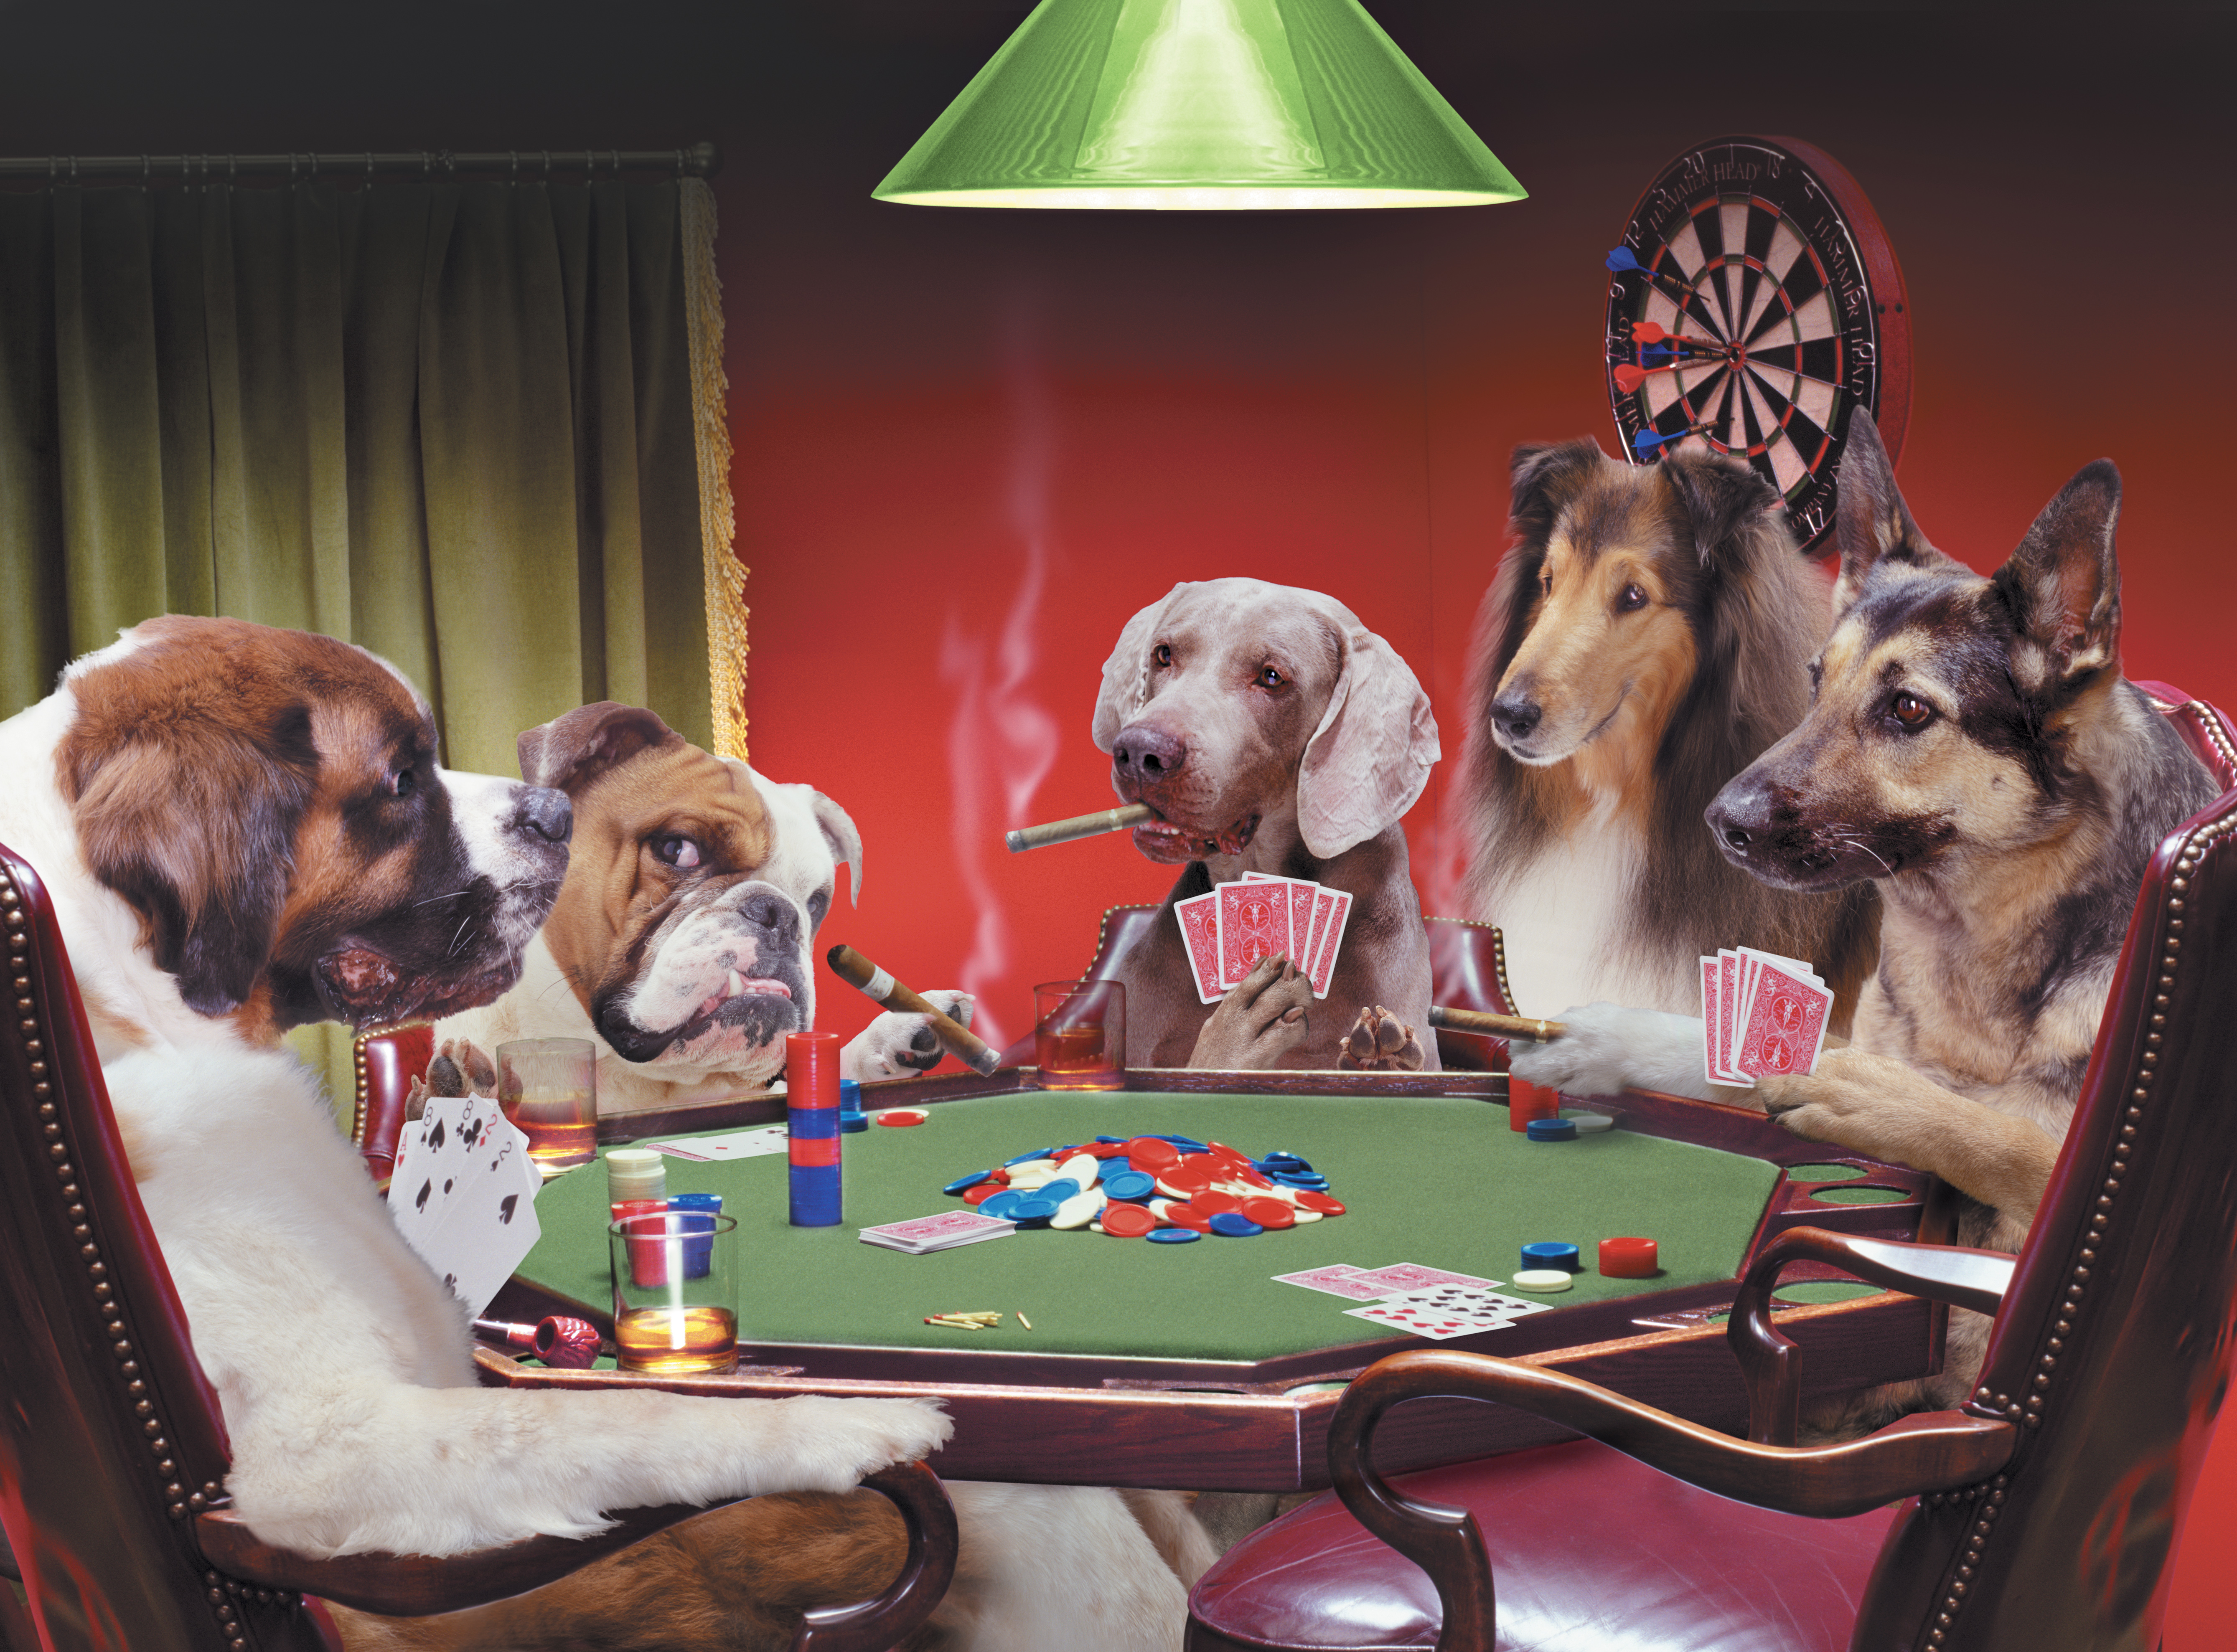 Dogs at table playing poker